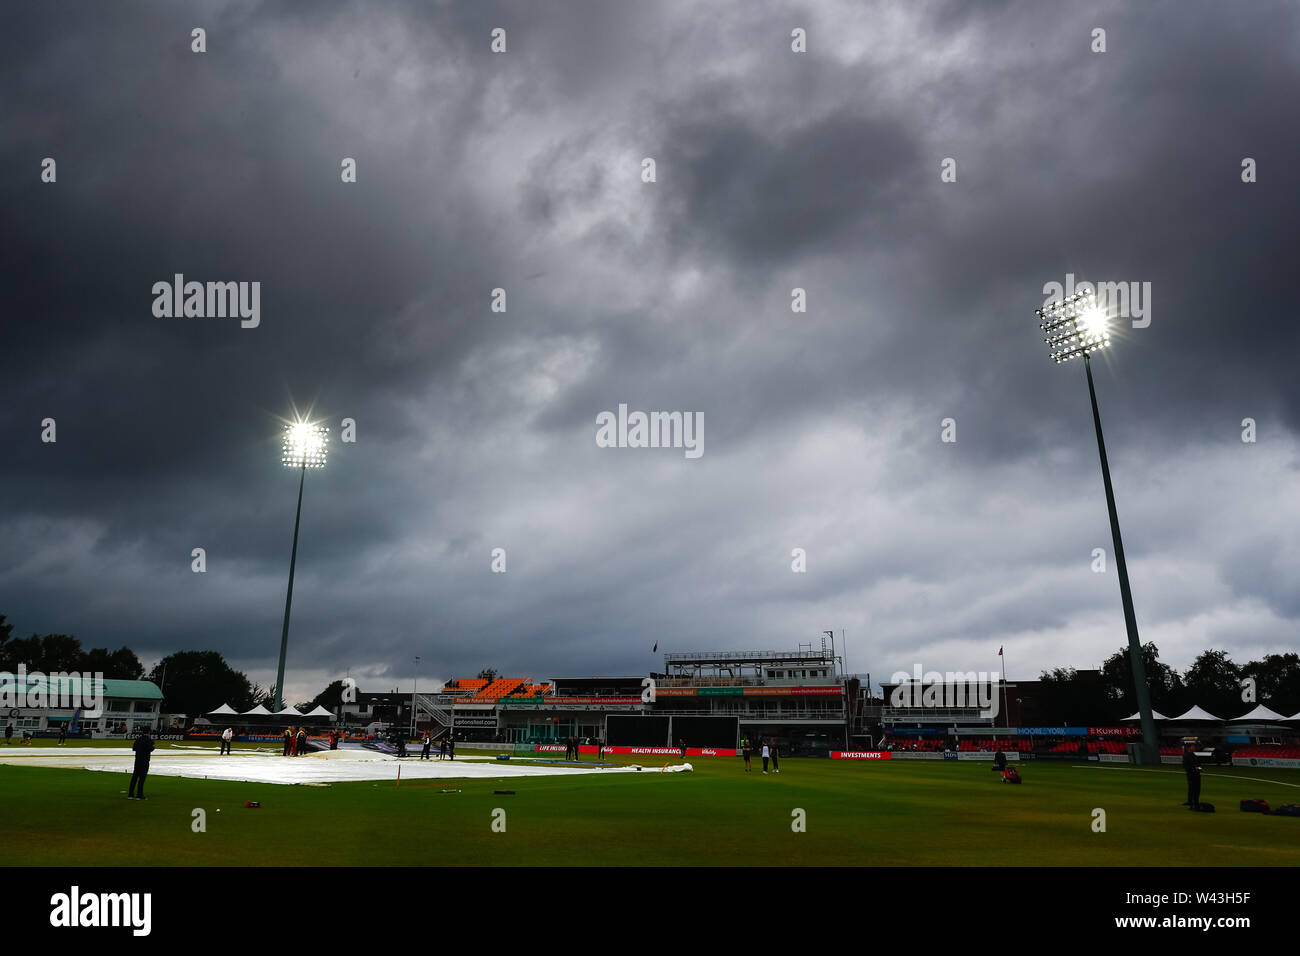 19th July 2019, Fischer County Ground, Vitality Blast T20 Cricket match, Leicestershire versus Lancashire Lightning; Storm clouds gather over the Fischer County Ground before the start of the match Stock Photo